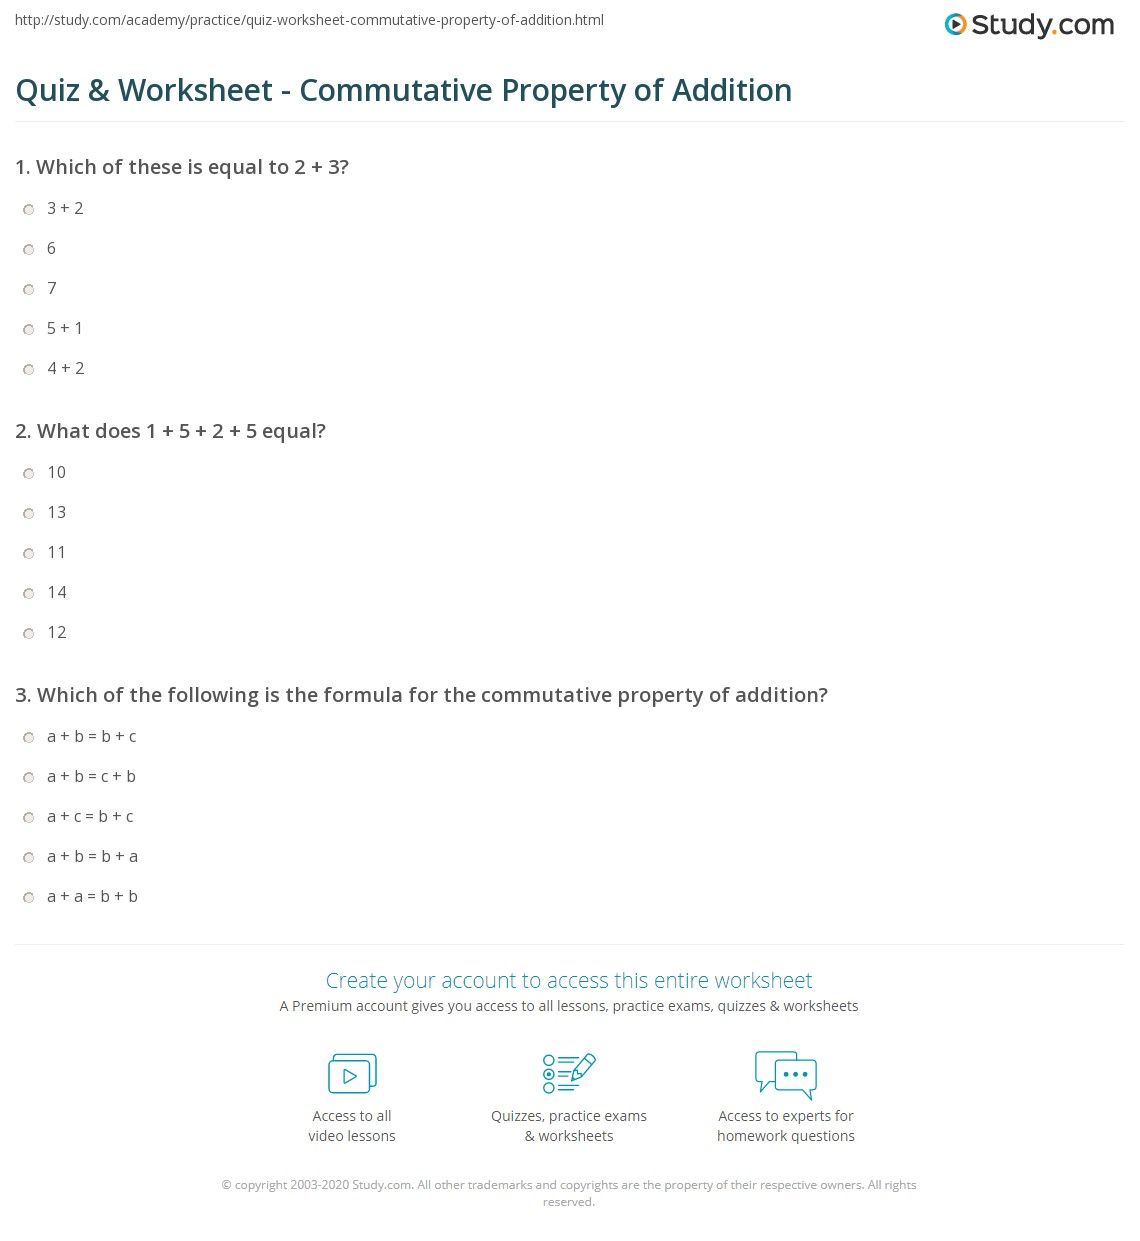 Distributive Property Of Multiplication Over Addition Worksheets – Distributive Property of Multiplication Worksheet